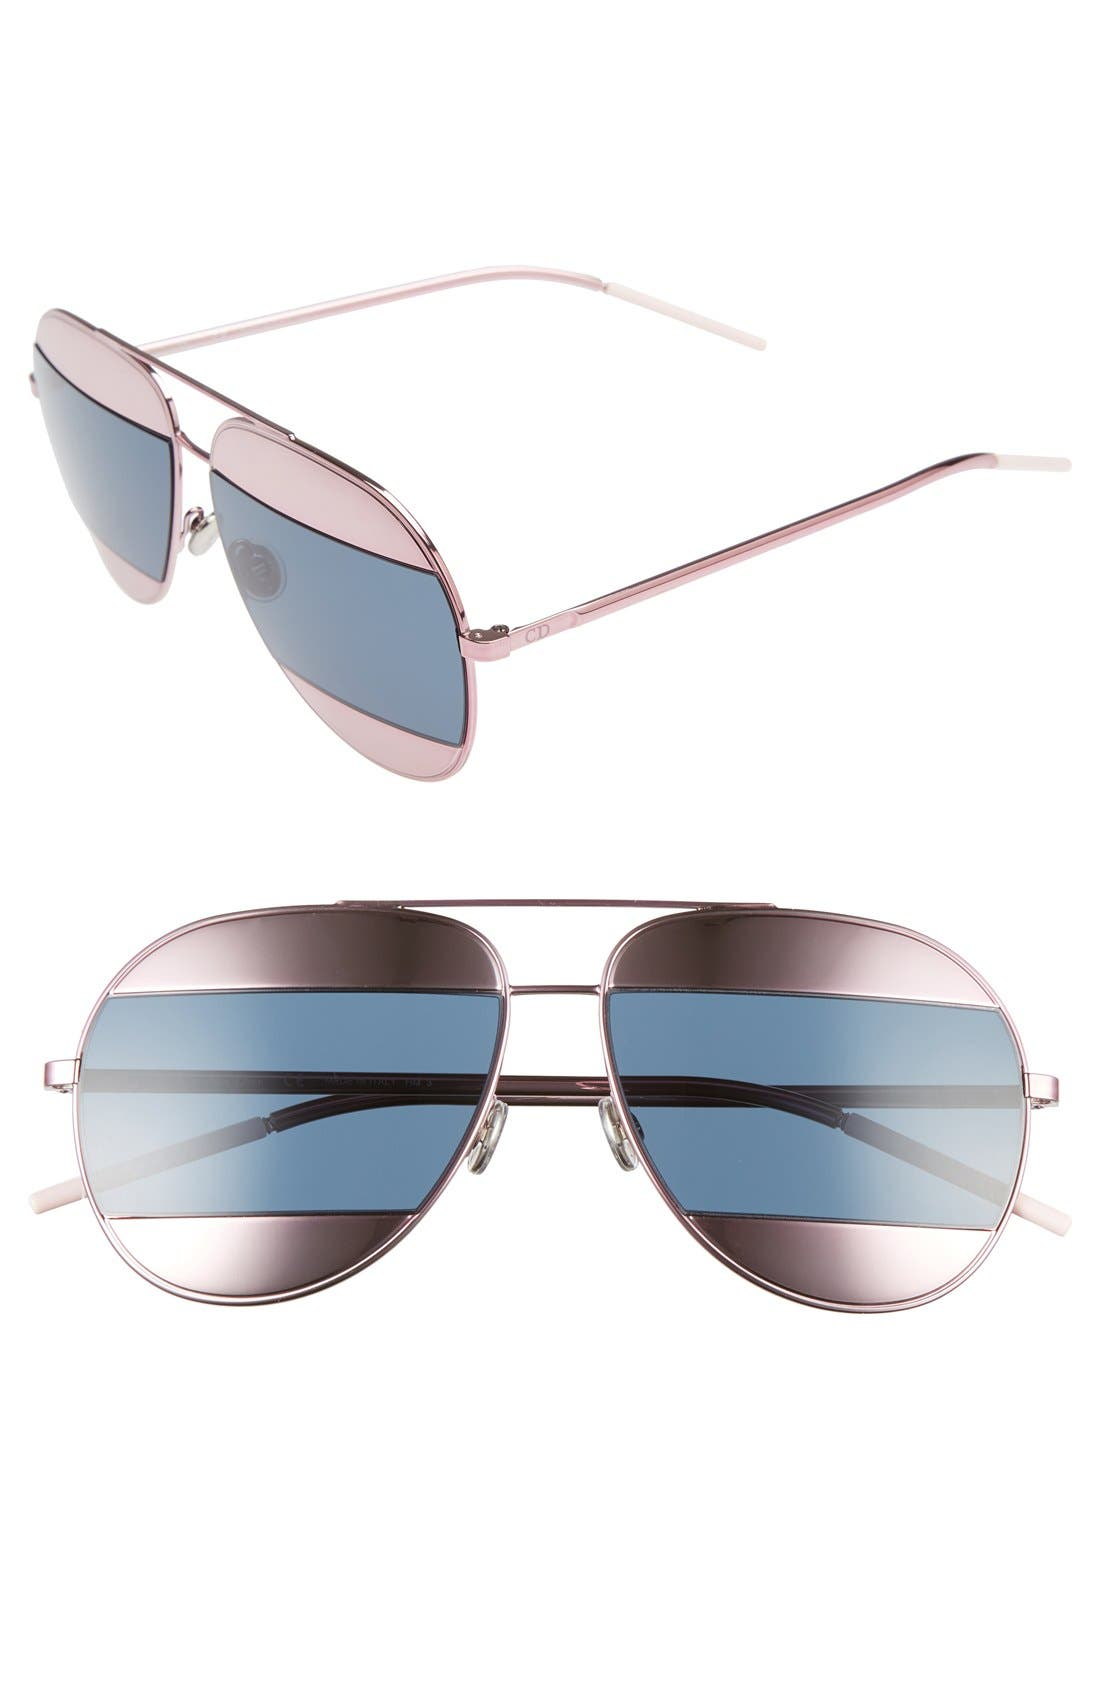 Dior Split 59mm Aviator Sunglasses